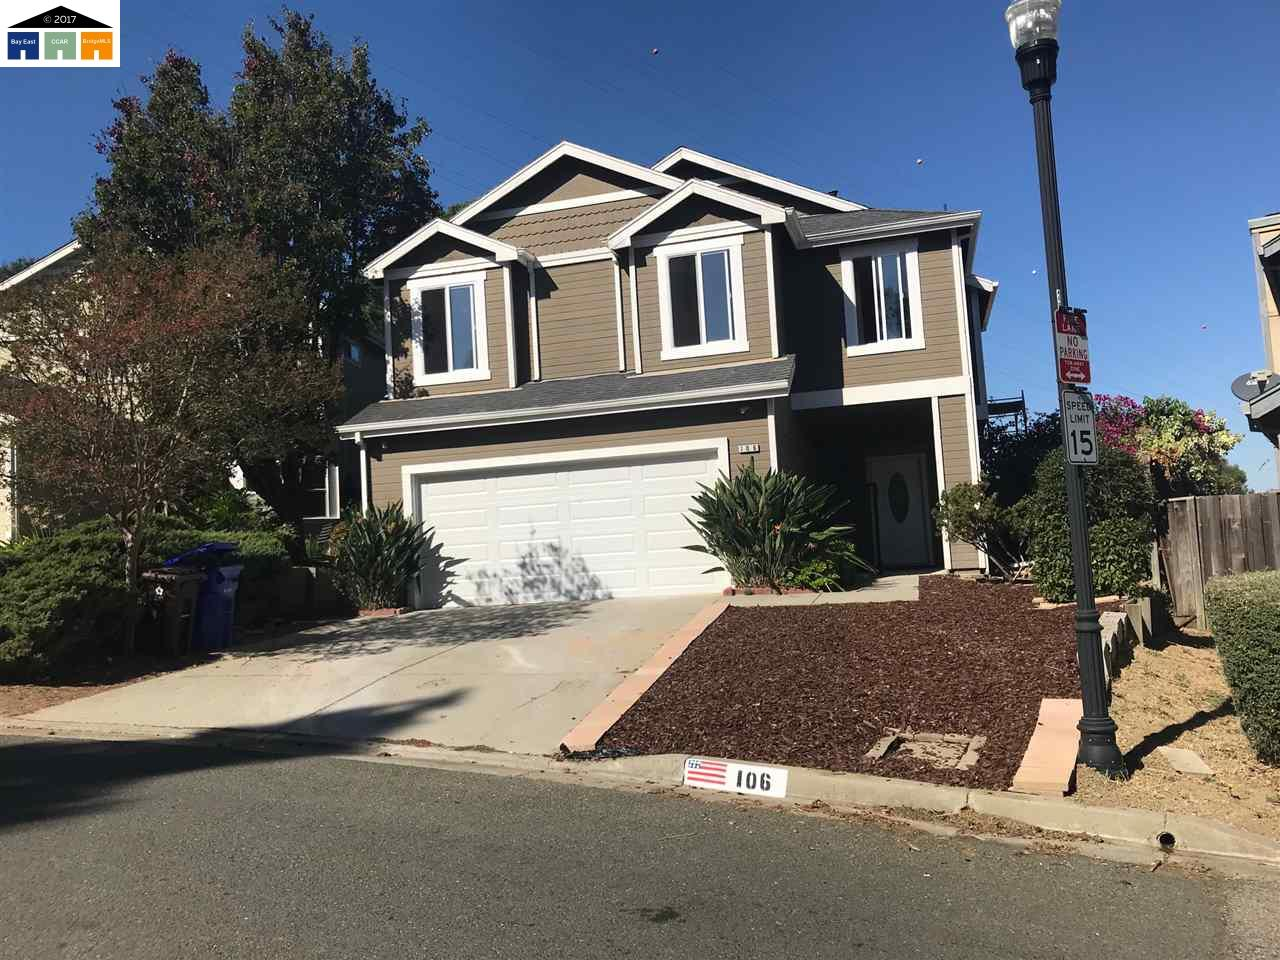 Single Family Home for Sale at 106 Bridgeview Court 106 Bridgeview Court Crockett, California 94525 United States